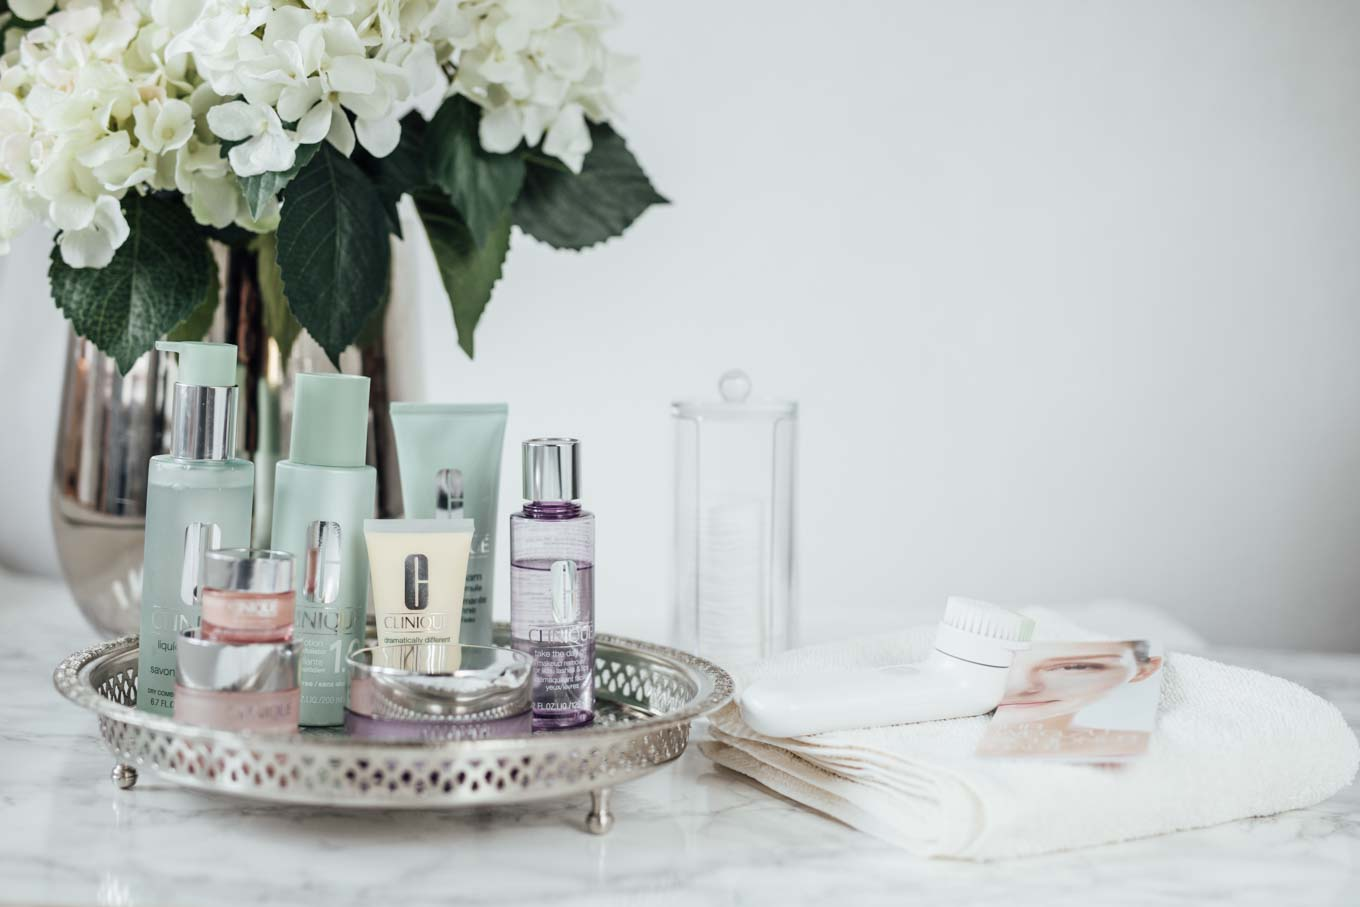 Beauty: My Skin Care Routine with Clinique - The secret to beautiful skin.